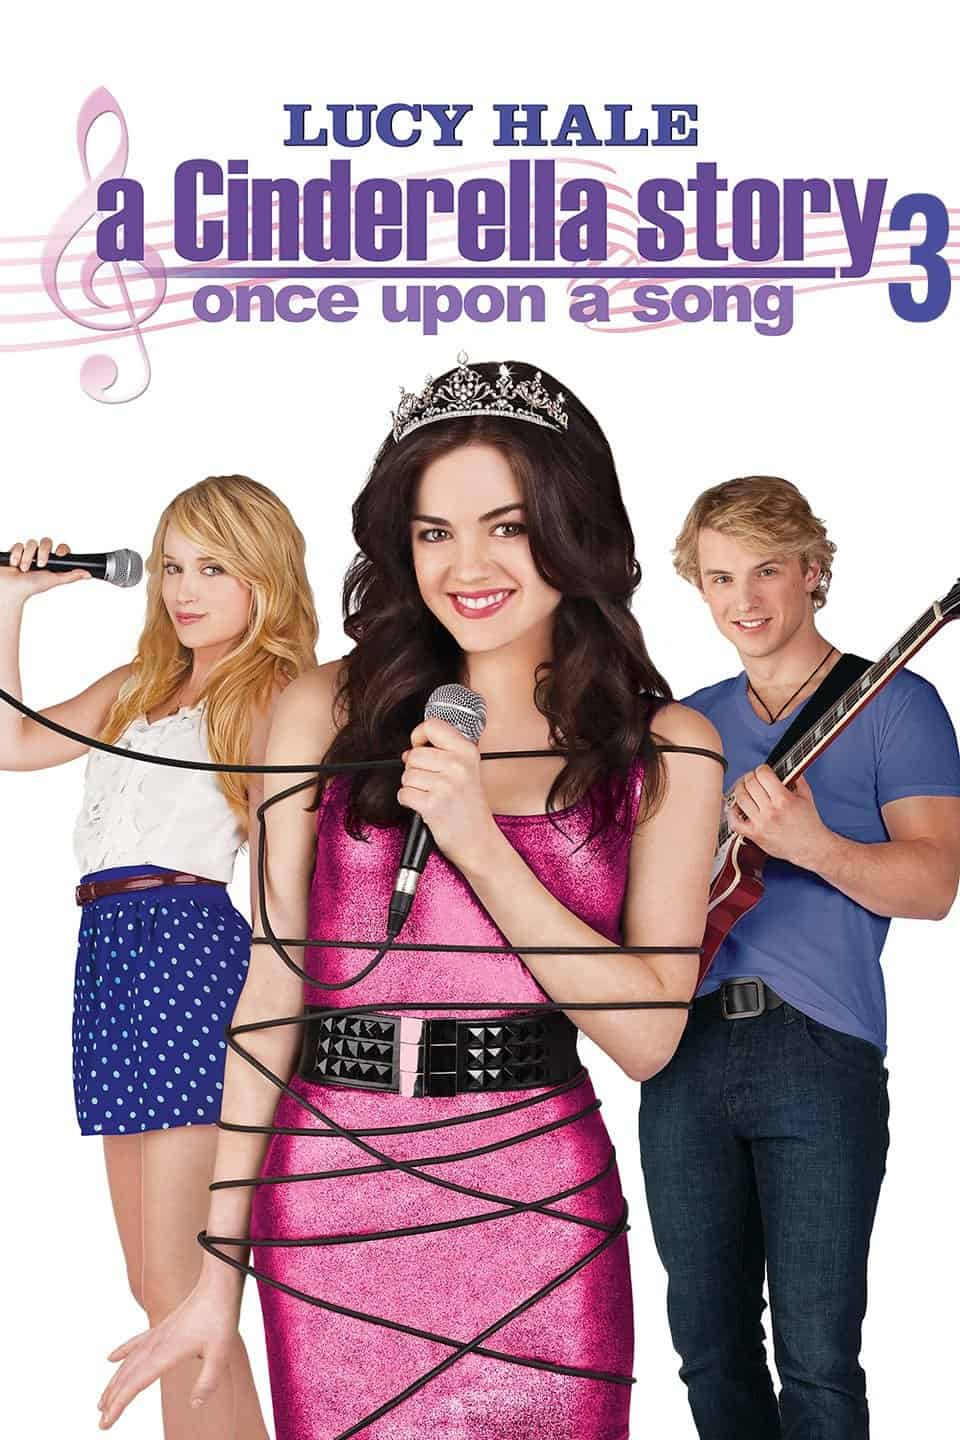 A Cinderella Story: Once Upon a Song, 2011